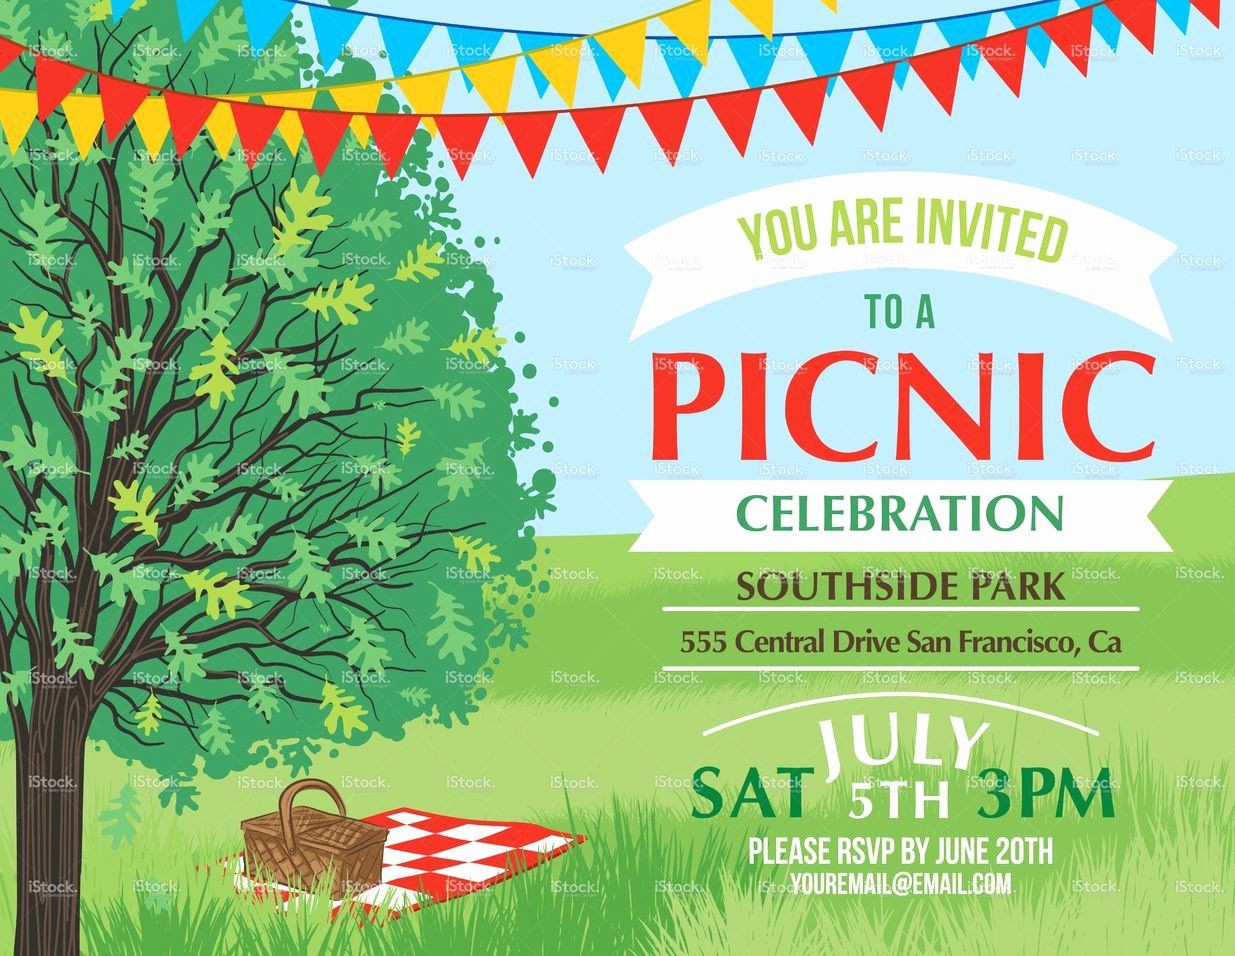 Picnic Invitation Template Free Best Of Summer Picnic and Bbq Invitation Flyer or Template Text is On Its